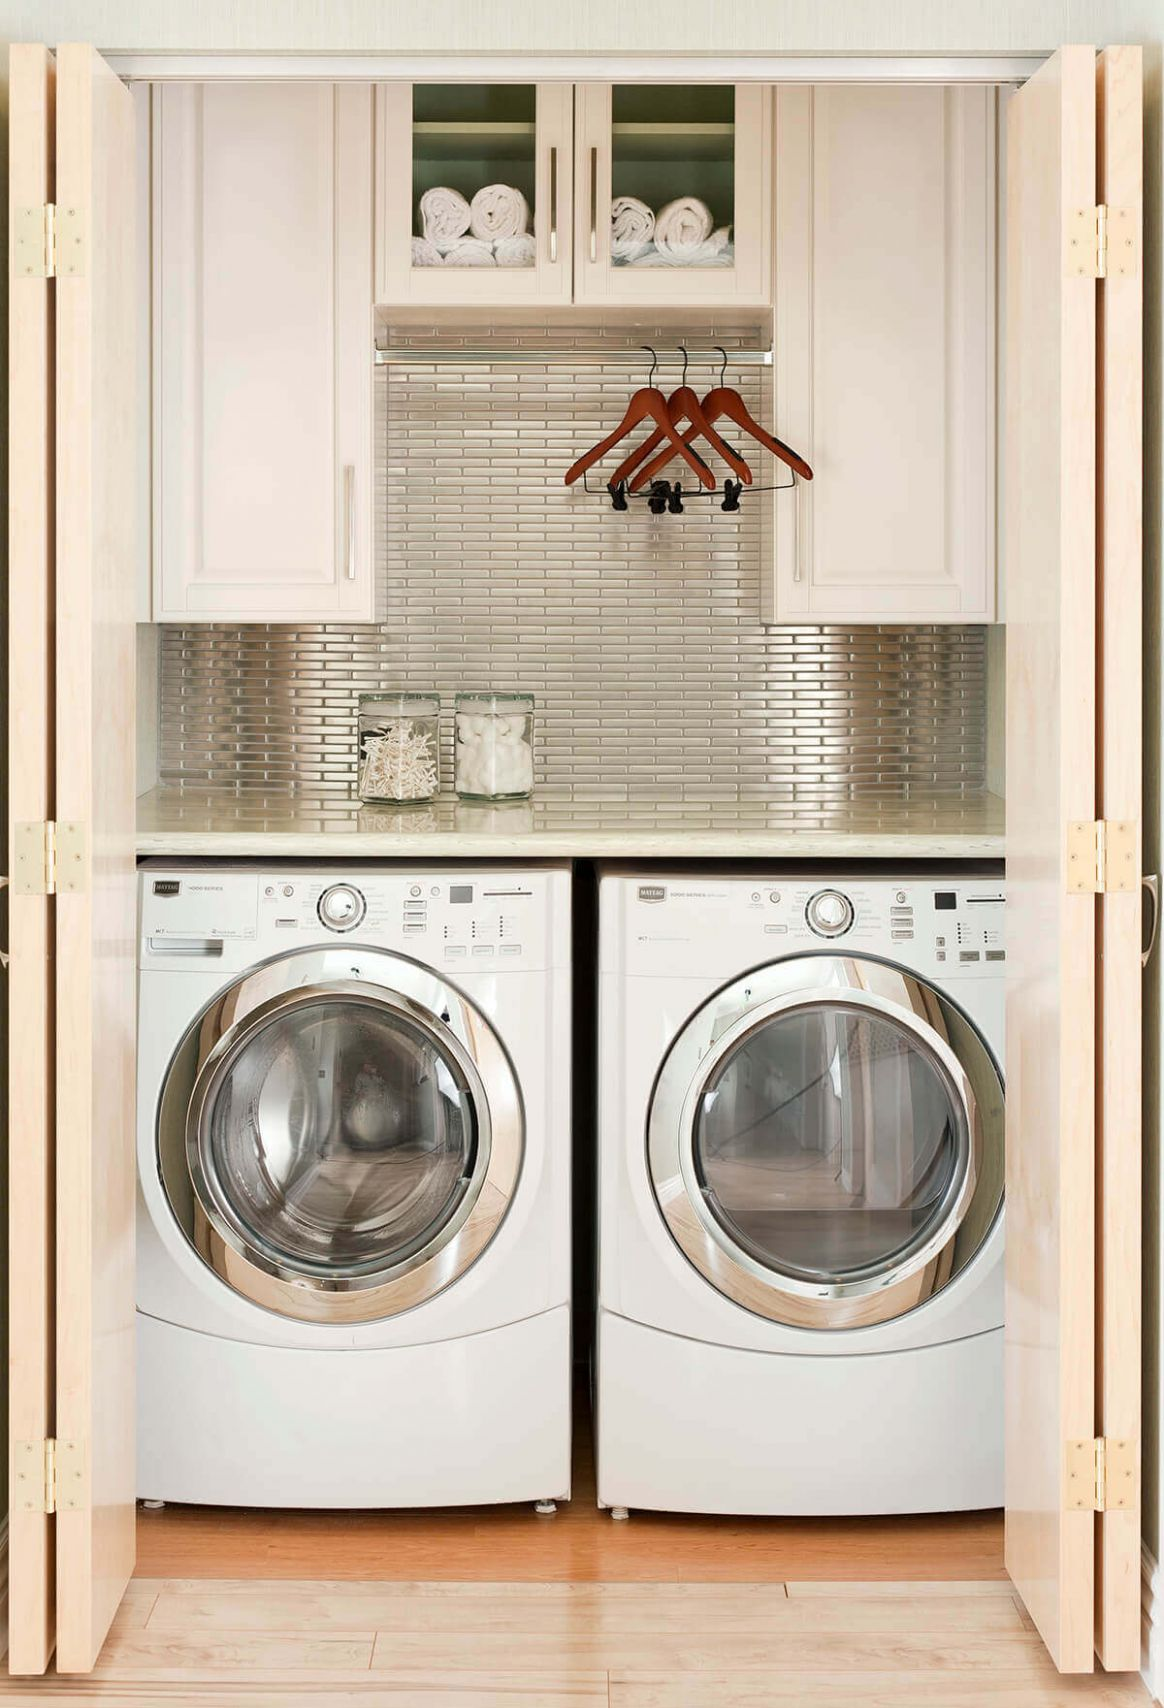 Modern Laundry Room Ideas for Small Spaces [ Updated 11 ] - laundry room ideas hgtv